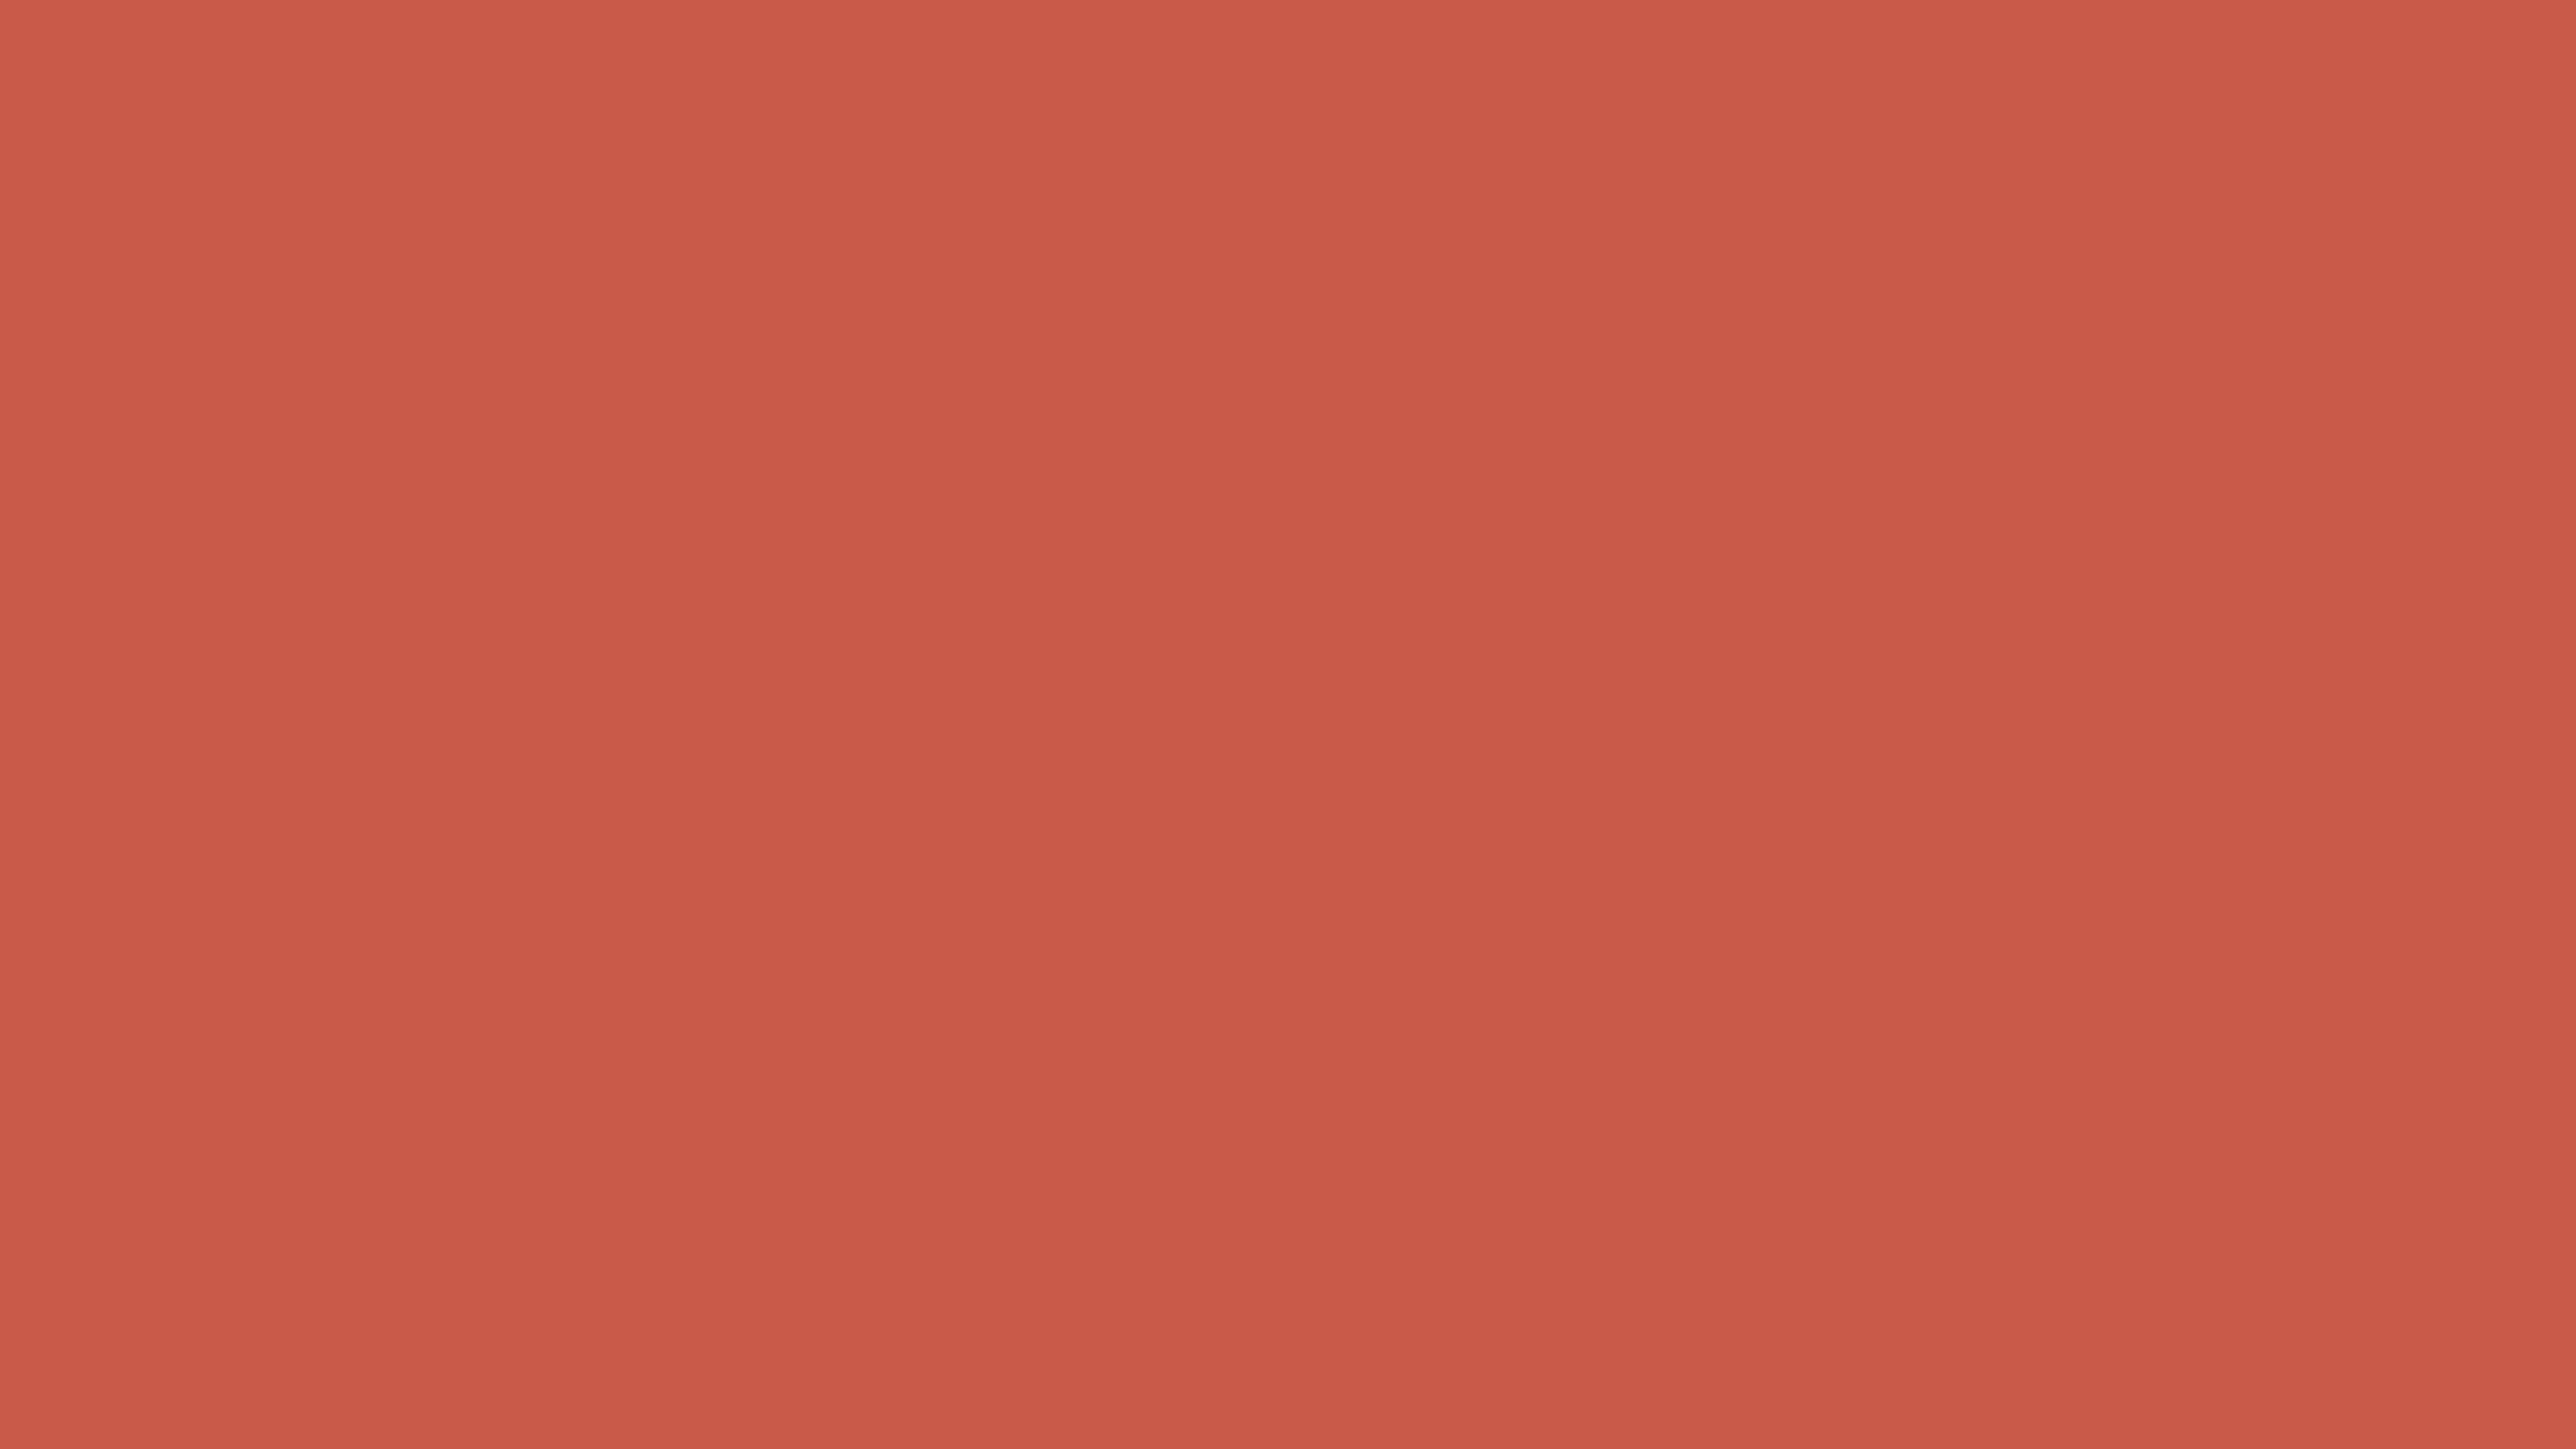 4096x2304 Cedar Chest Solid Color Background